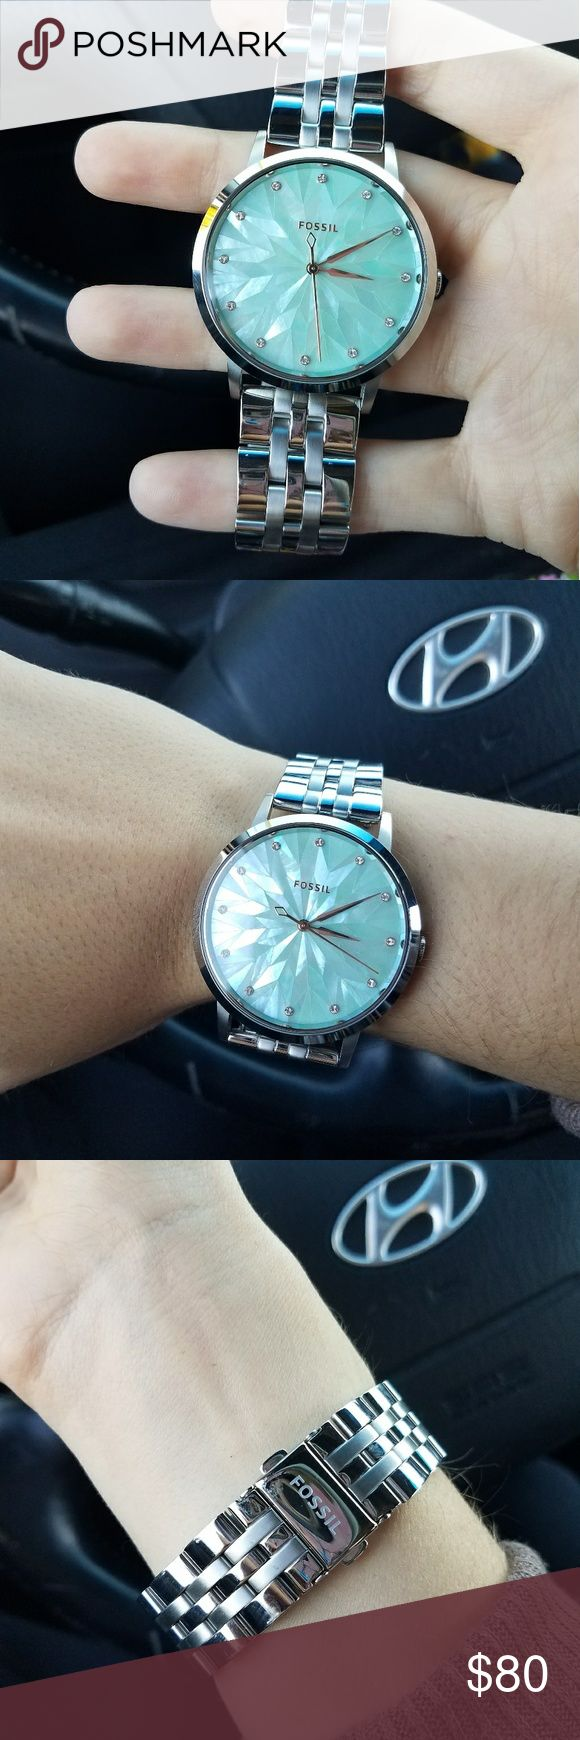 Women's fossil watch Great condition womens fossil watch. Only worn a few times. Had 4 links taken out but will include them so you can add them back in If you need them. Price negotiable. Fossil Accessories Watches